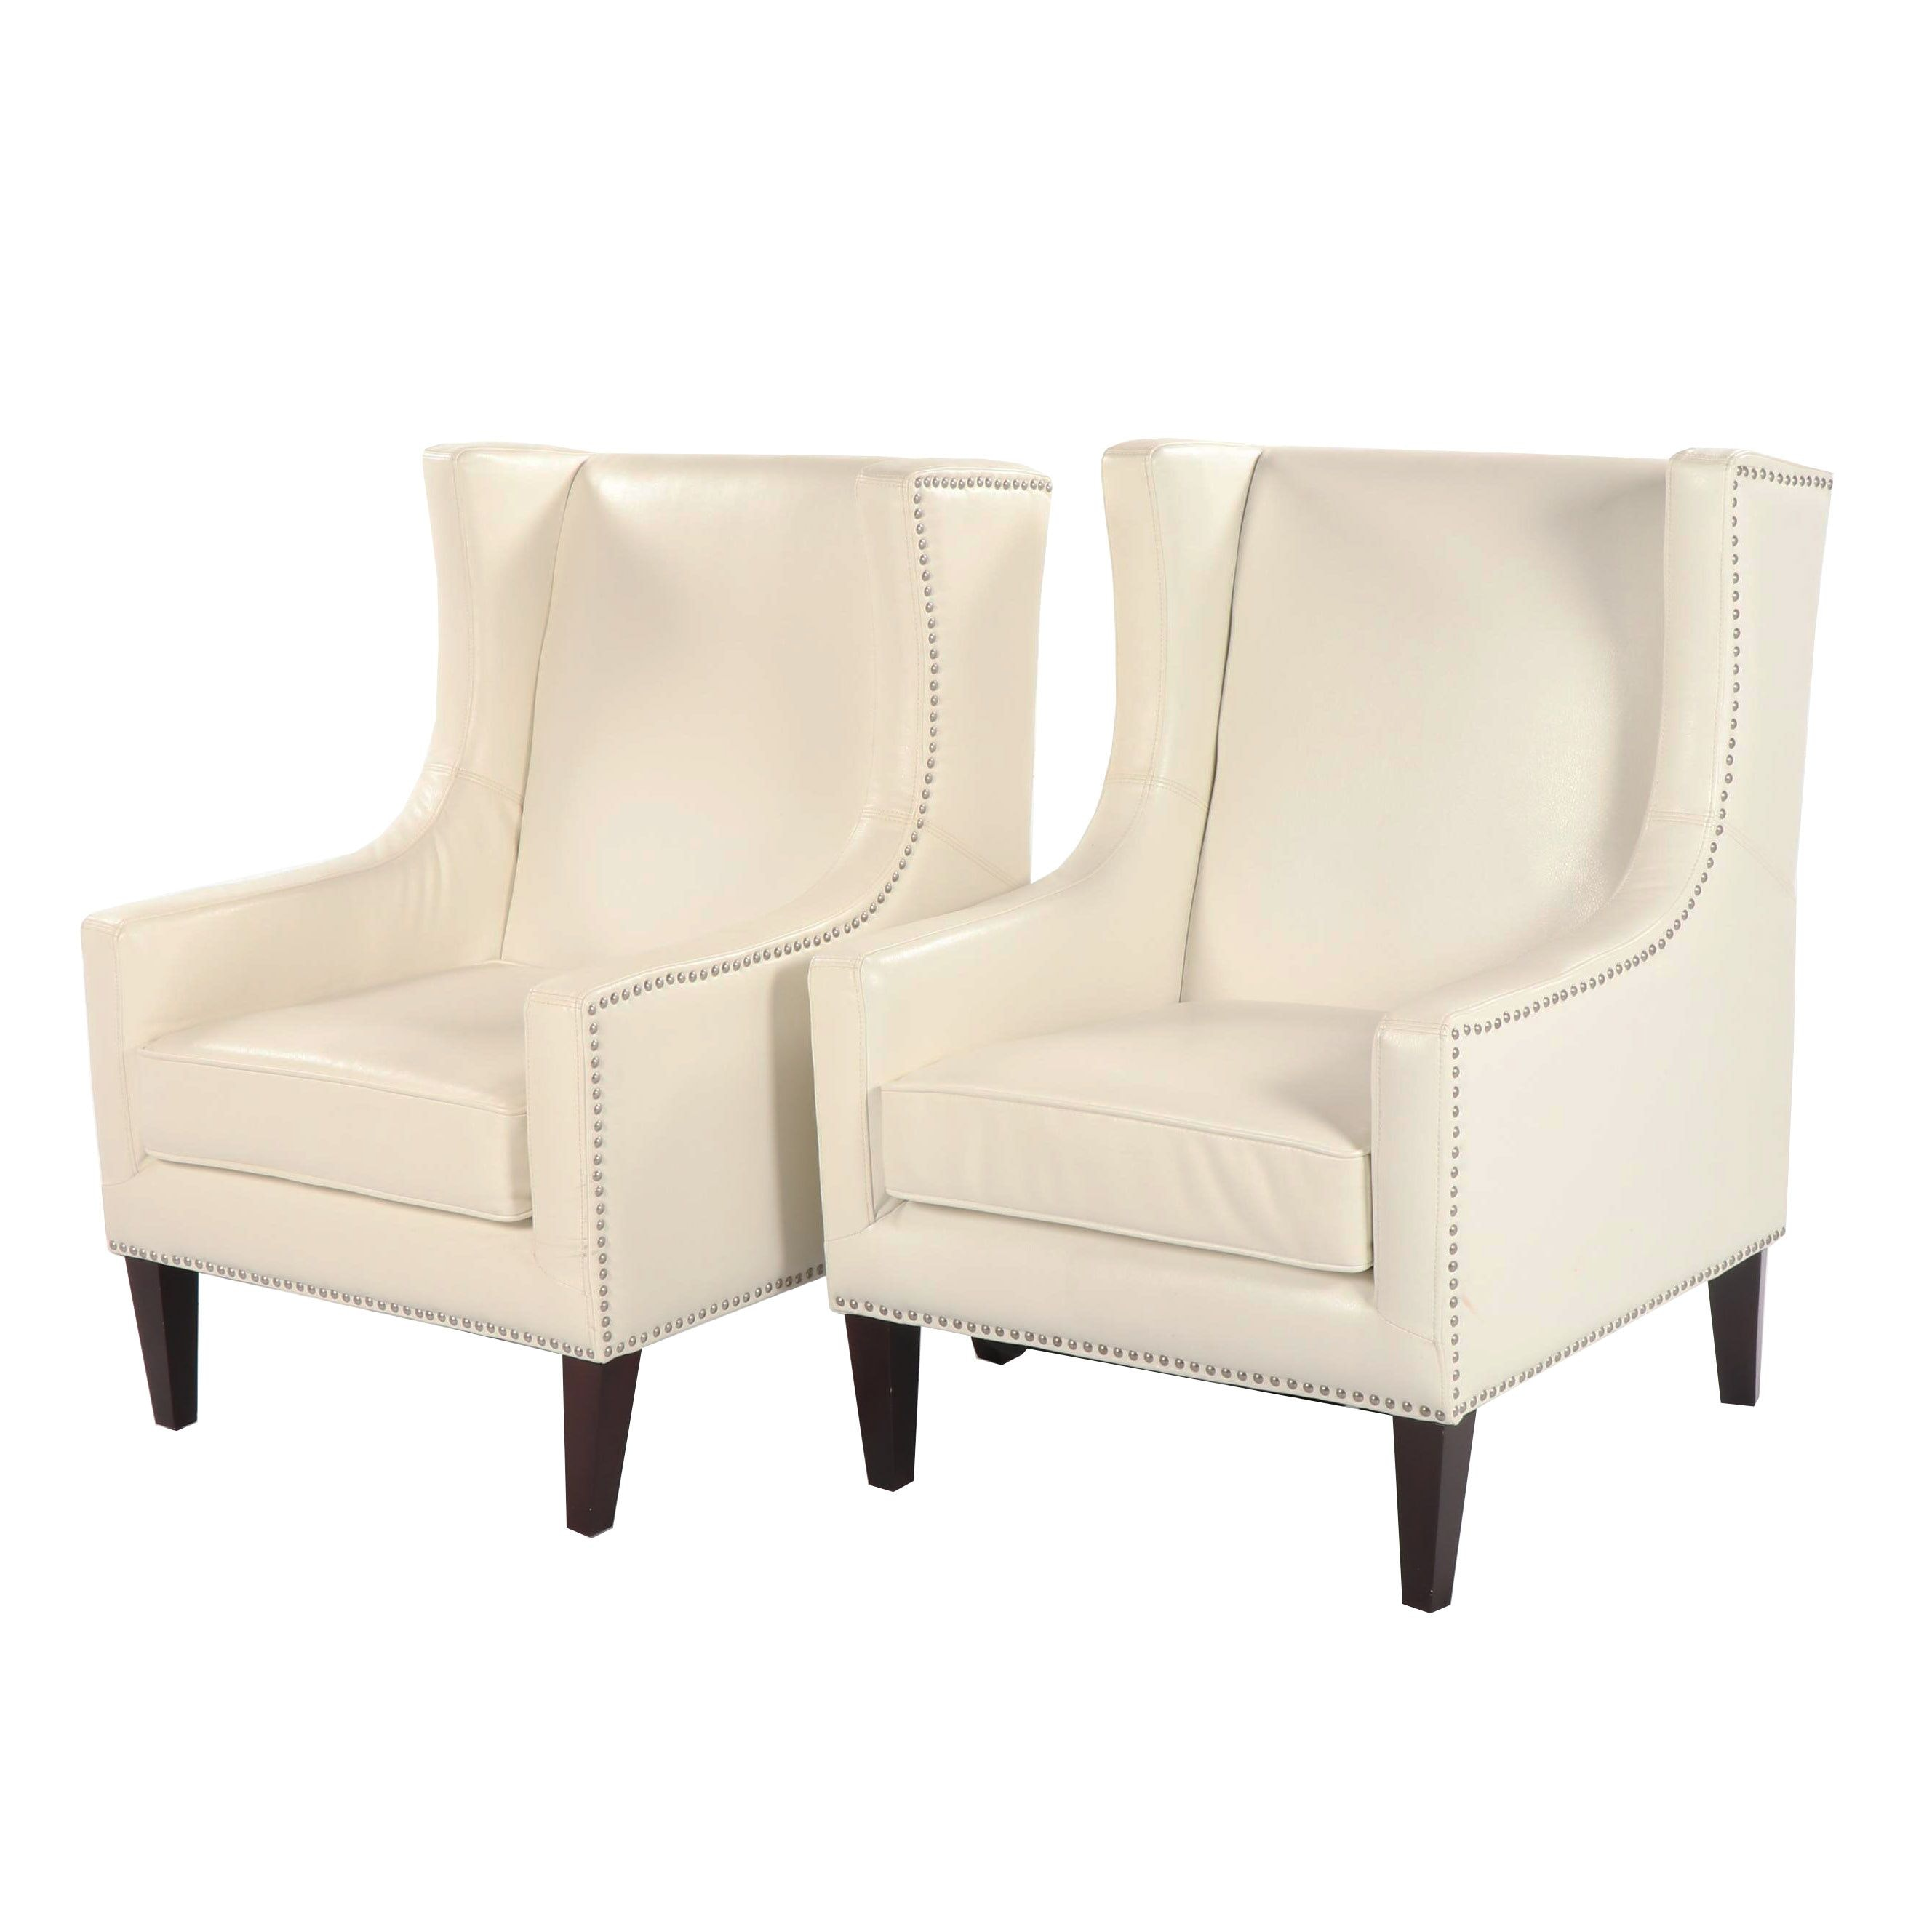 Faux Leather Upholstered Wingback Chairs by Haining Shuyou, 21st Century